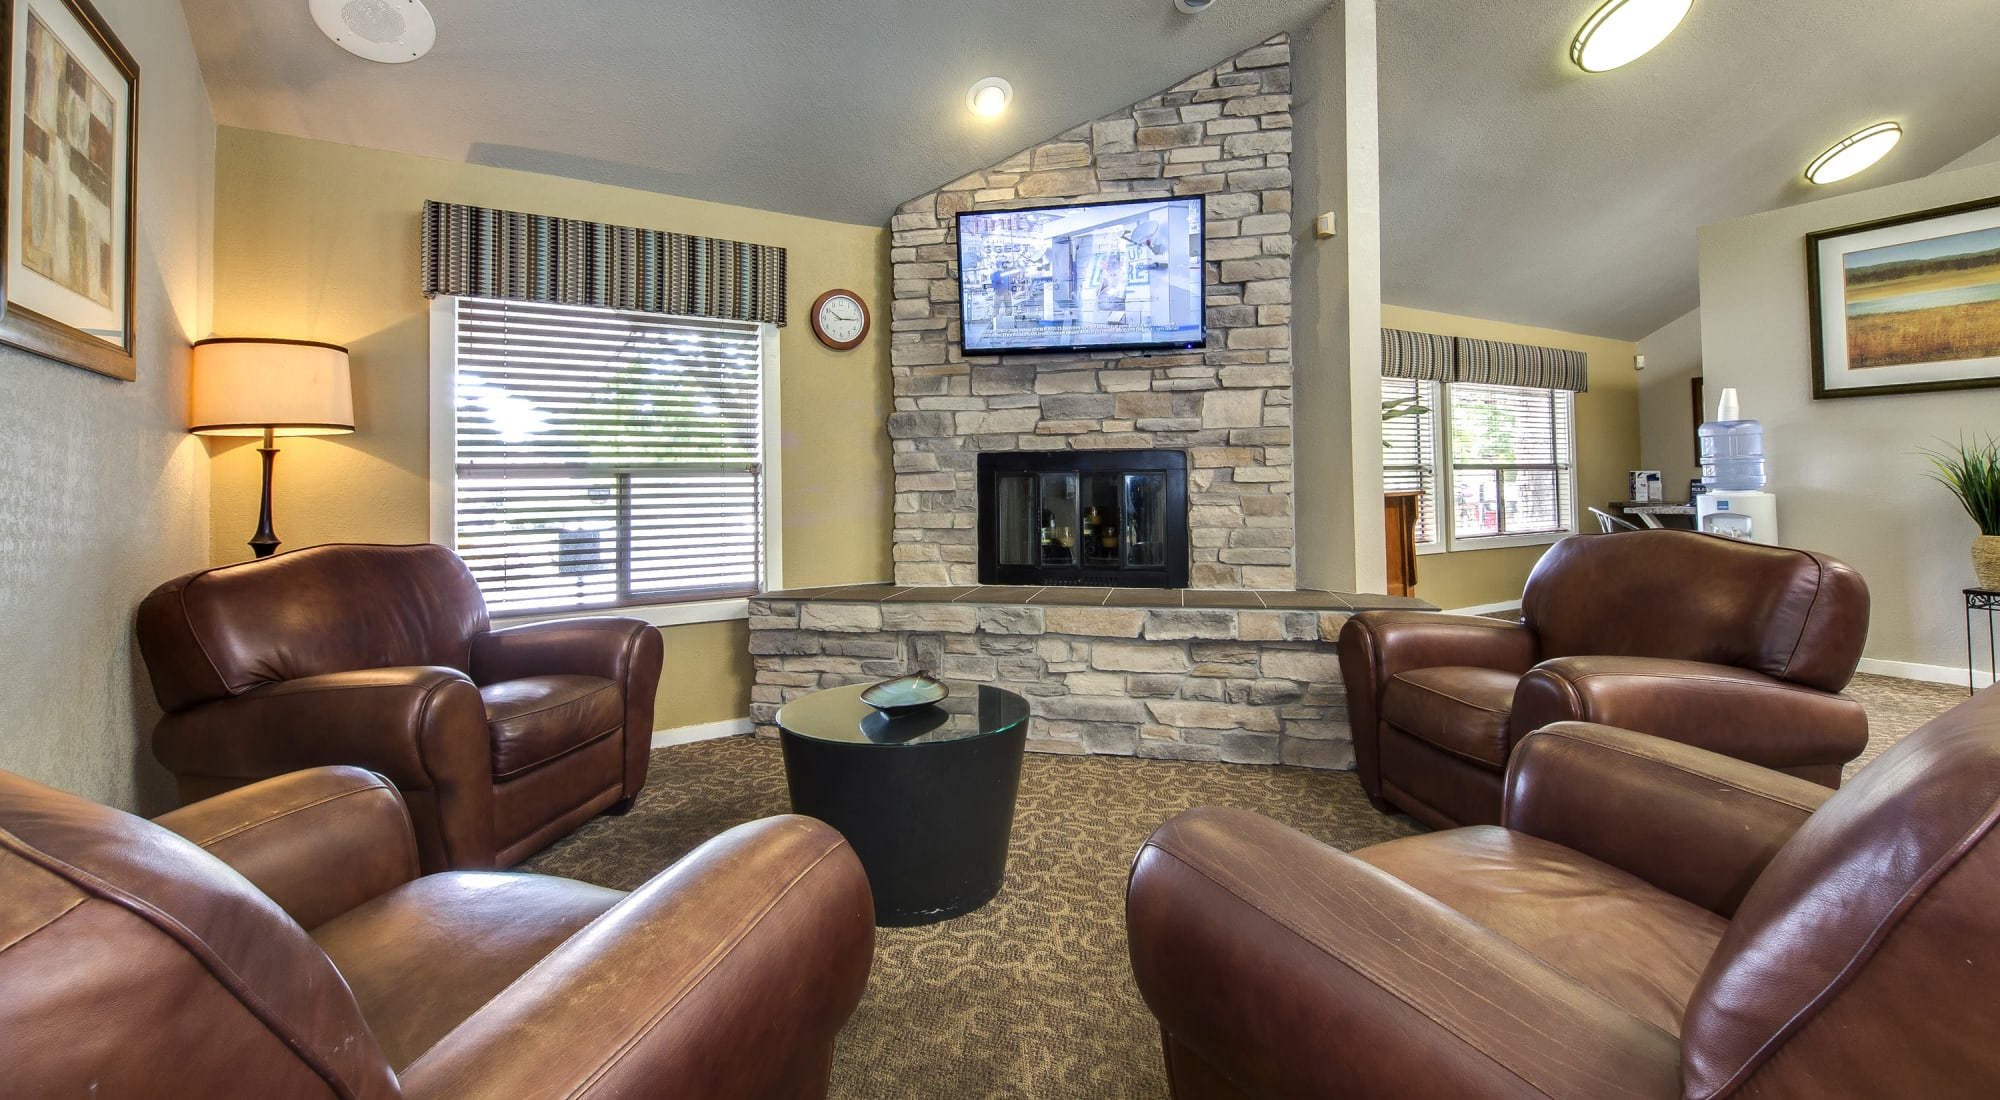 Amenities at Santana Ridge in Denver, Colorado